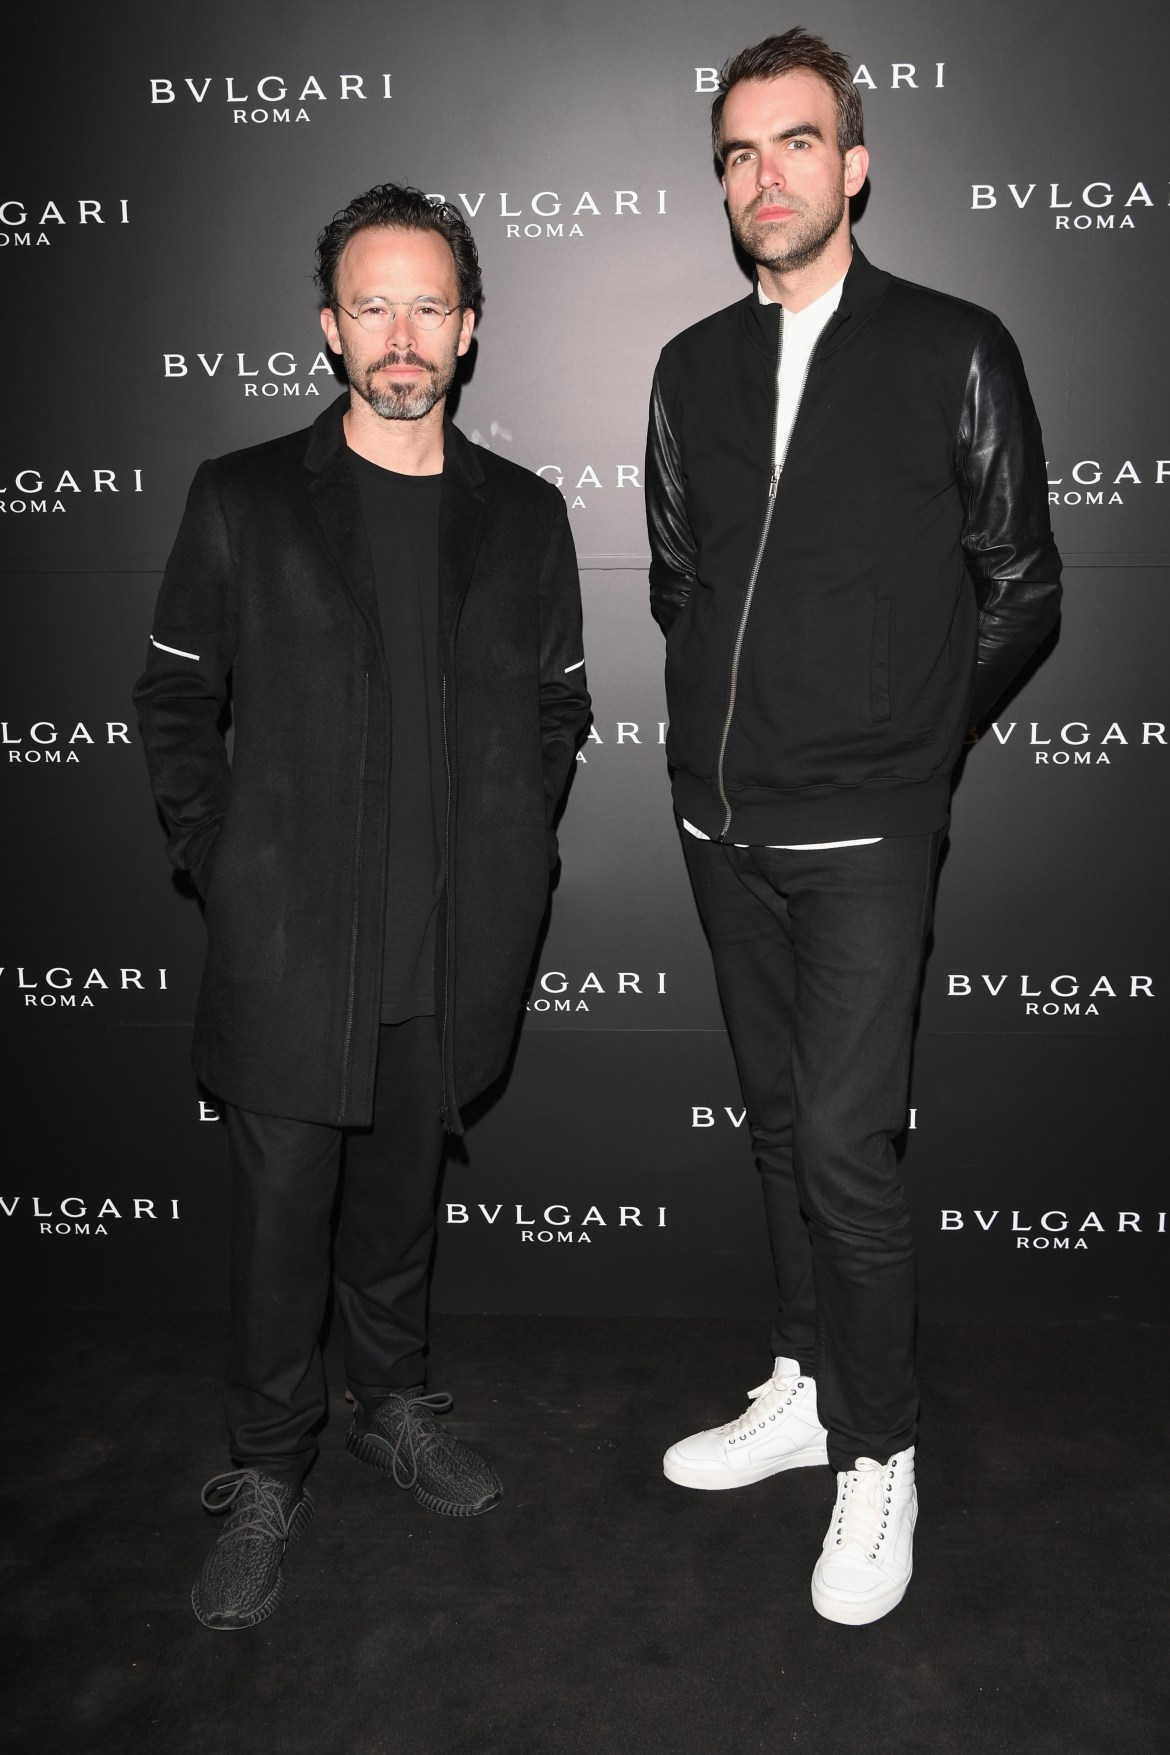 MILAN, ITALY - APRIL 12: Daniel Arsham and Alex Mustonen attend BVLGARI Celebration of B.Zero1 At Milan Design Week at Hotel Bulgari on April 12, 2016 in Milan, Italy.  (Photo by Venturelli/Getty Images for BVLGARI) *** Local Caption *** Daniel Arsham;Alex Mustonen